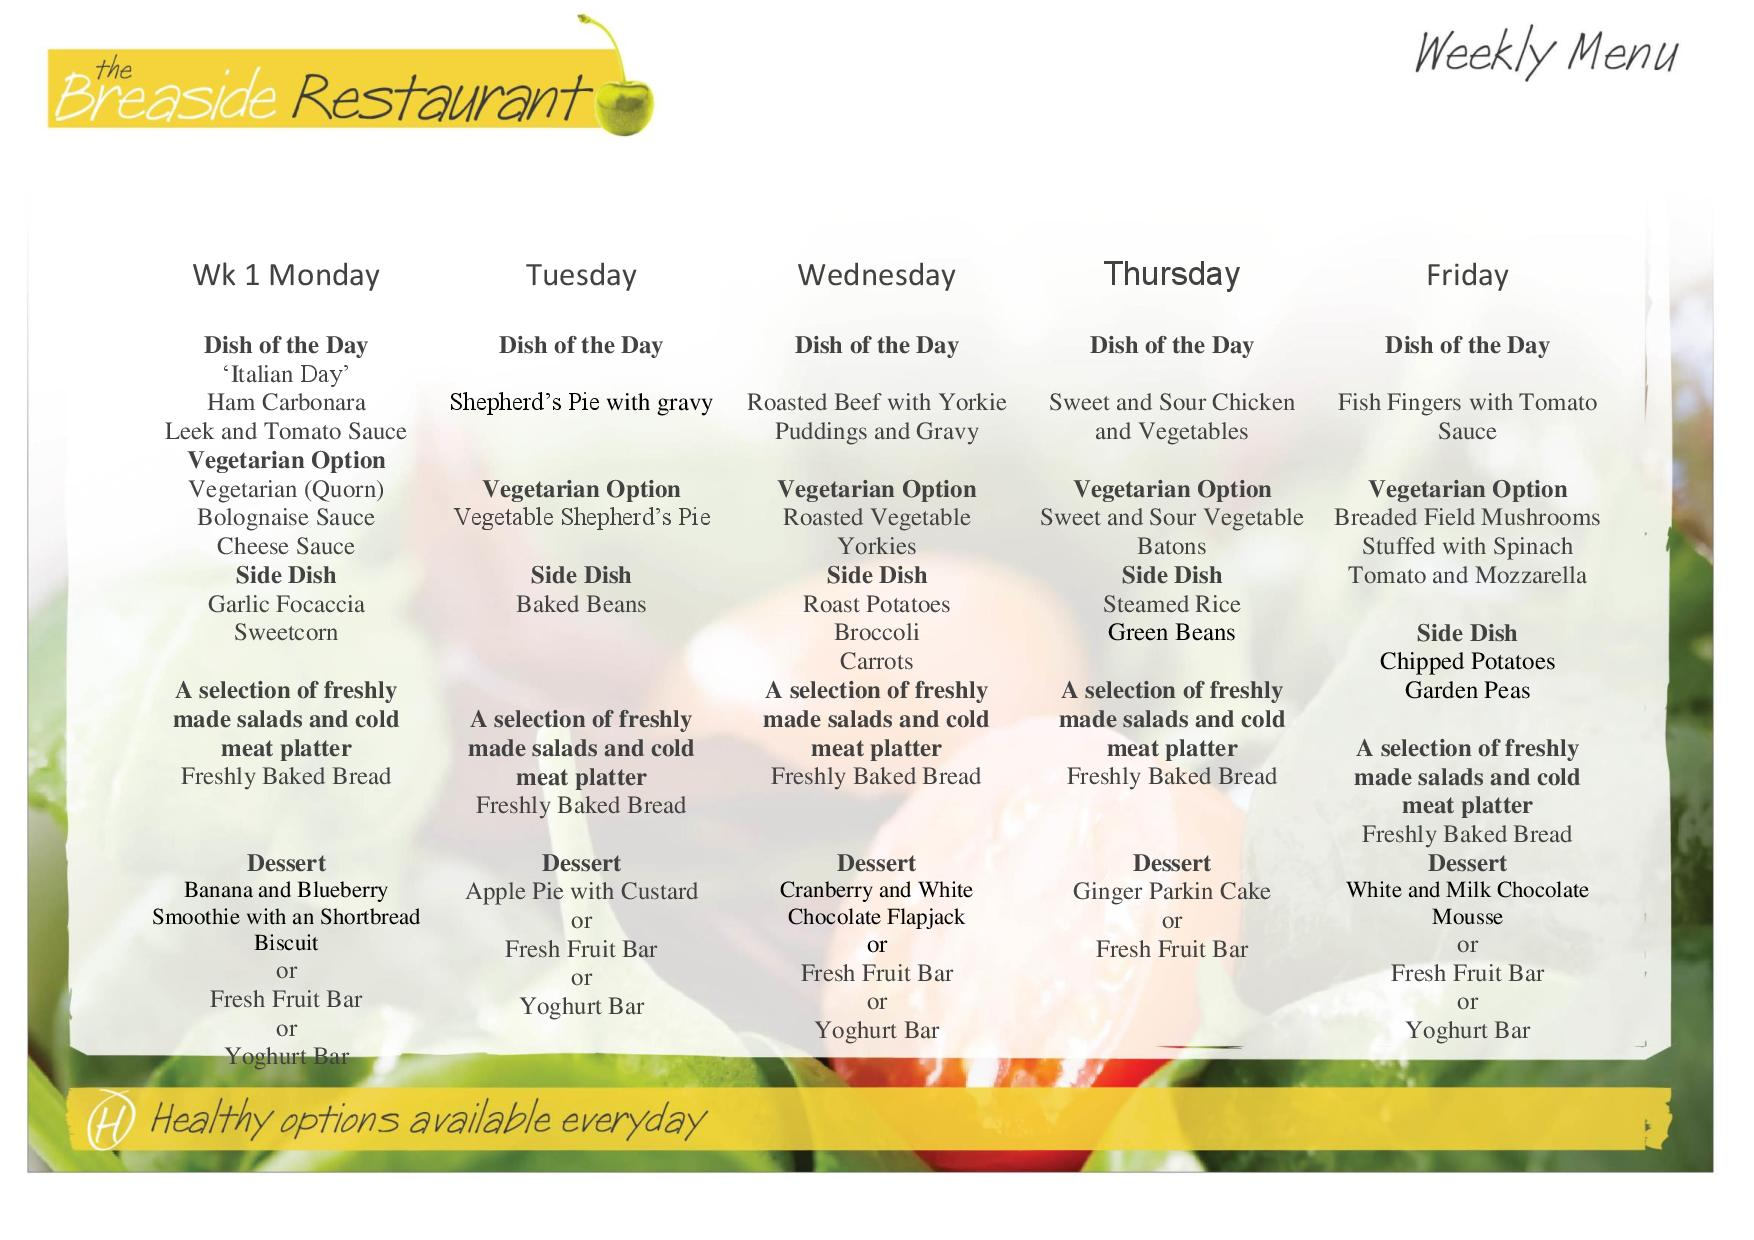 Autumn Term 2018 Menus Week 1, 2 and 3